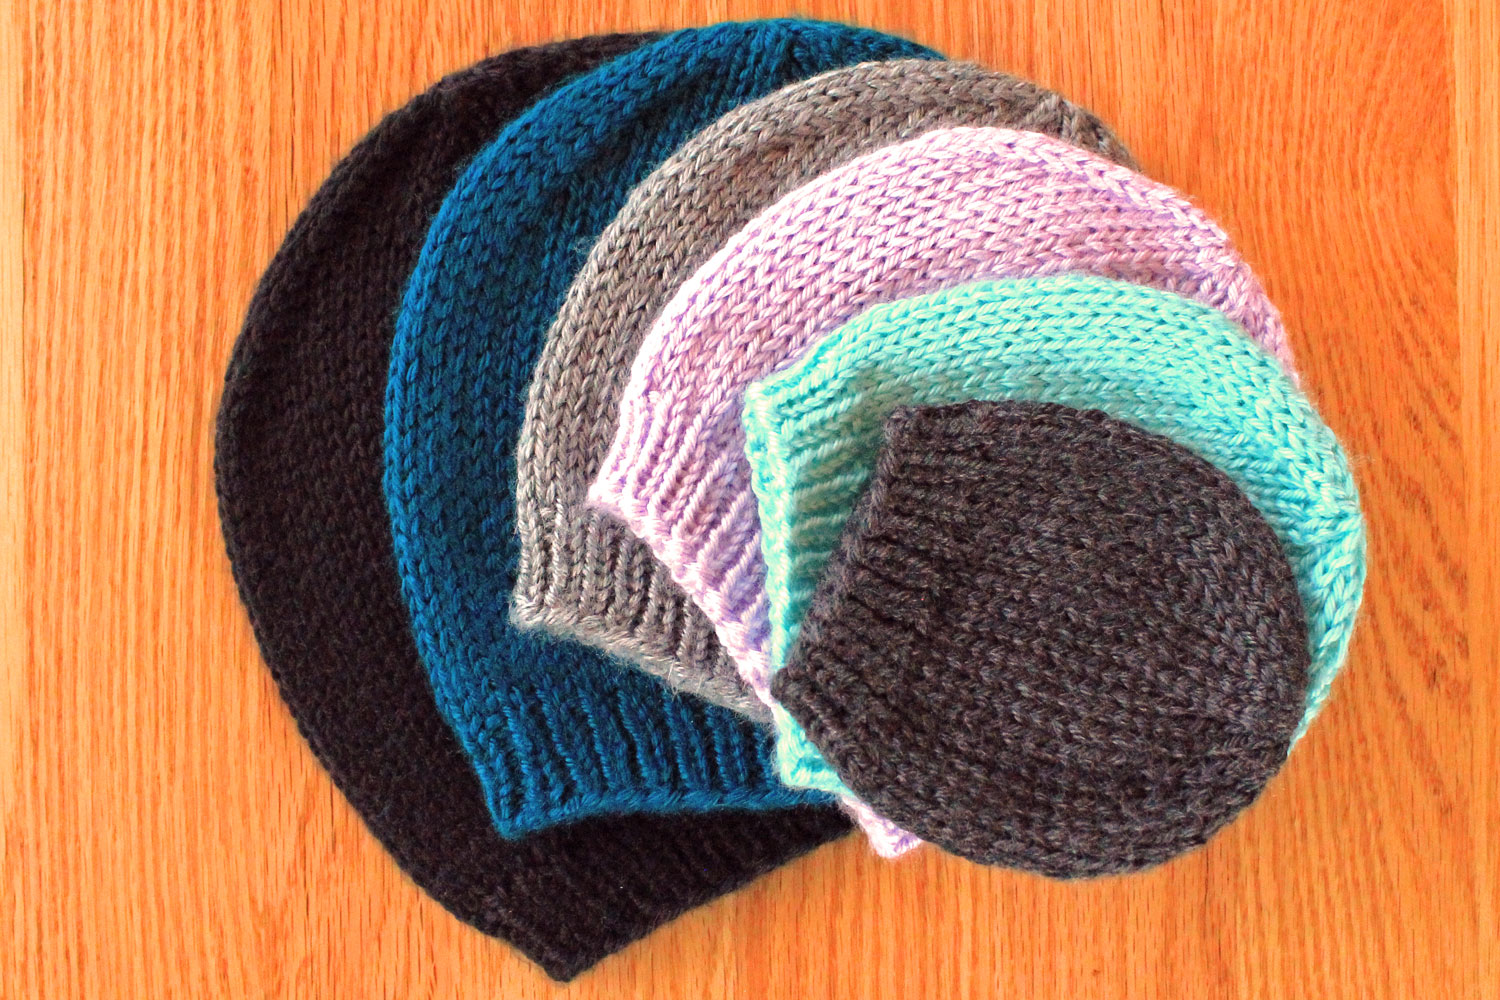 Simple beanie hat knitting pattern purlsandpixels easy basic knit hat in all sizes knitting pattern by liz chandler purlsandpixels bankloansurffo Choice Image